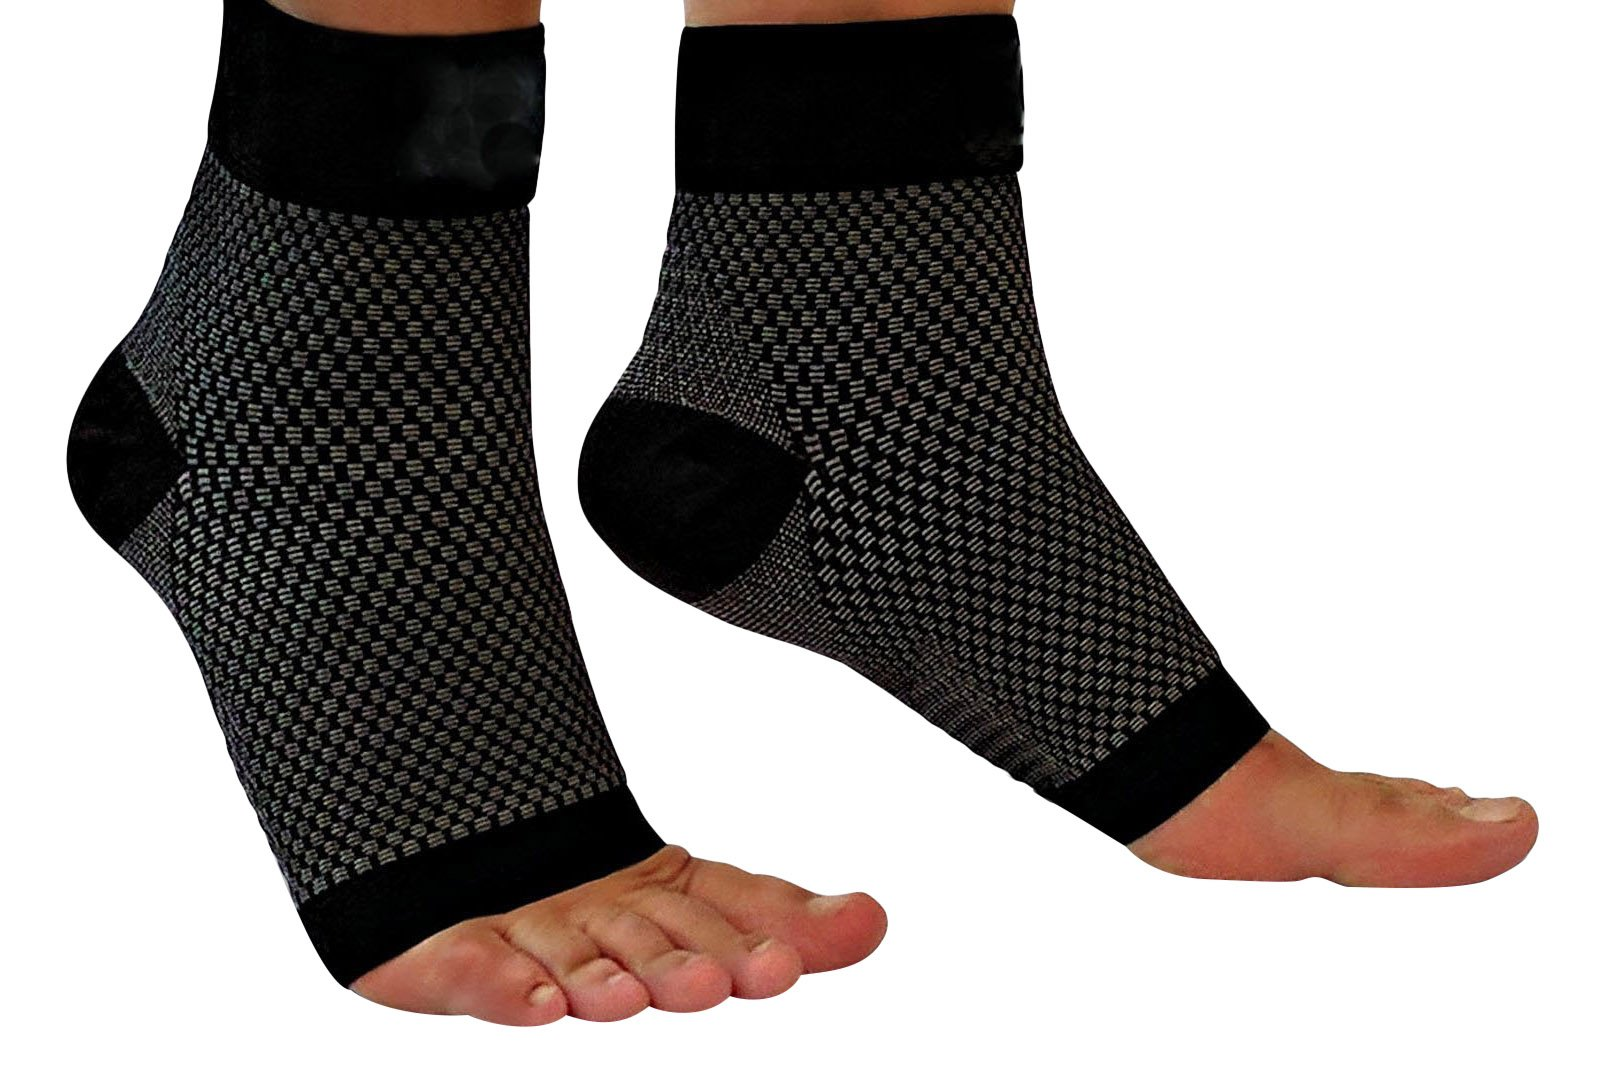 Compression Foot Sleeves, Plantar Fasciitis Compression sleeves - Better than Night Splint Socks, Shoe, Insoles, Inserts & Orthotic for Foot, Ankle Pain Relief for men, women